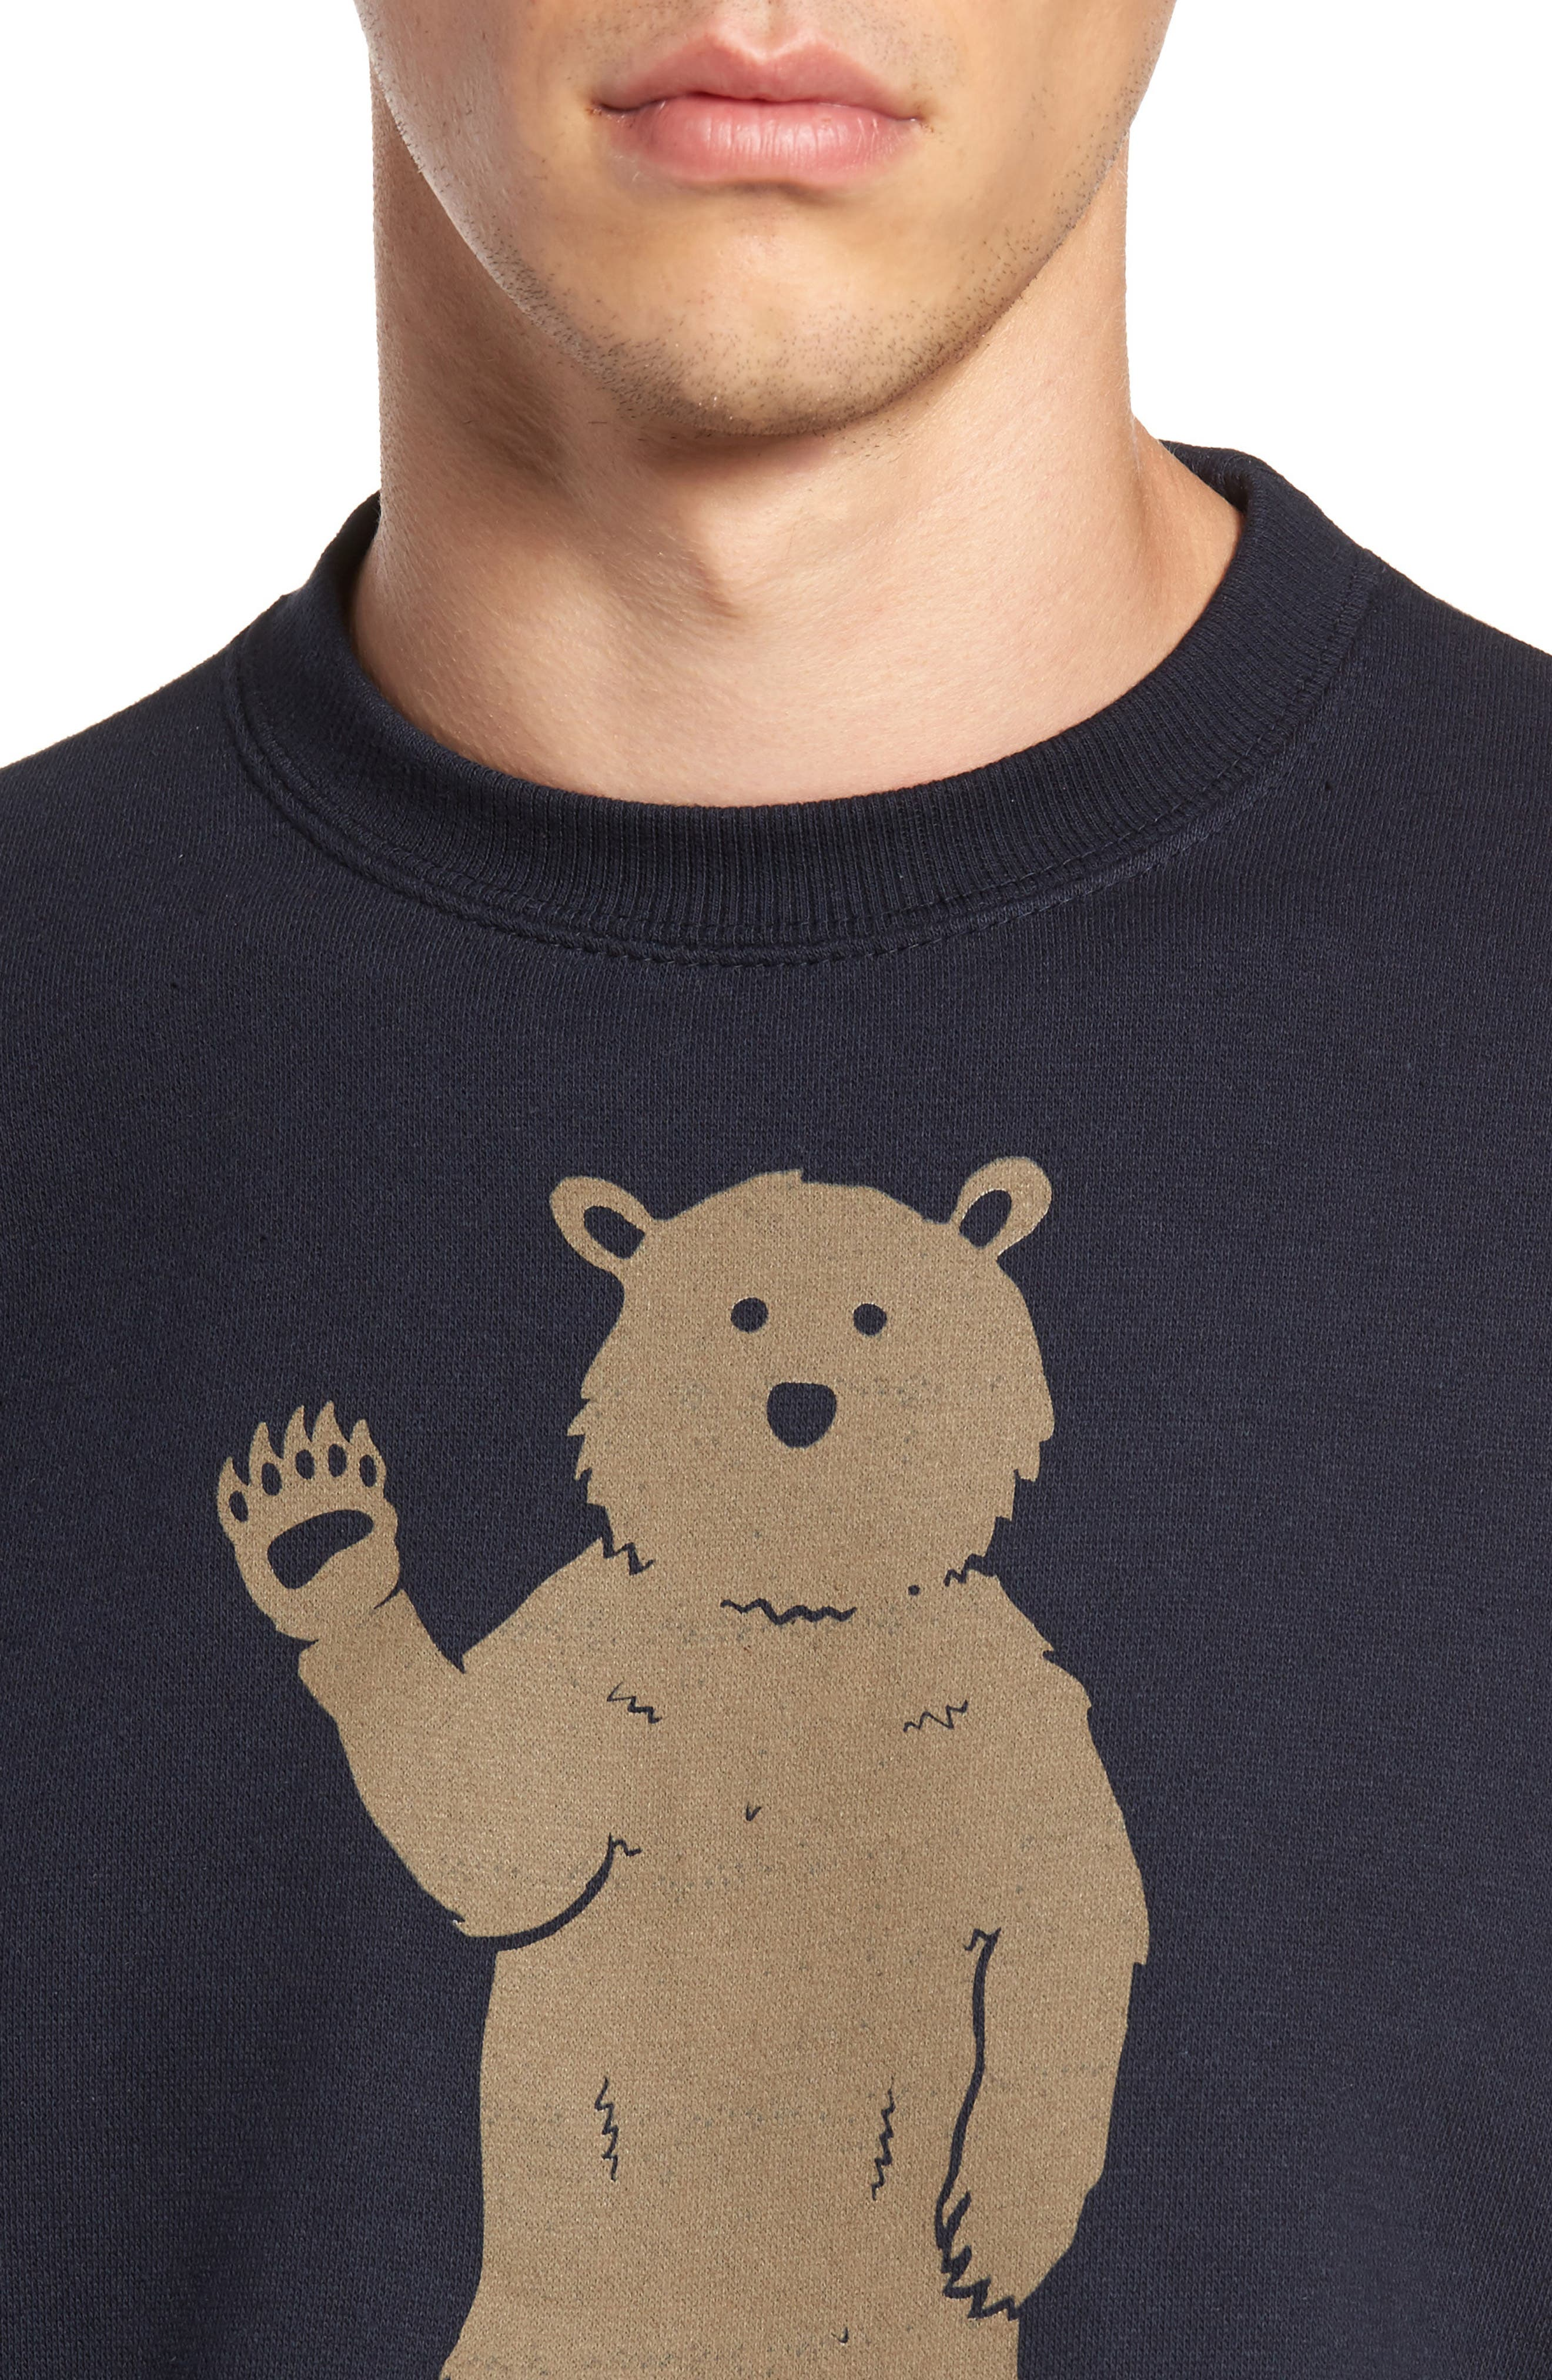 Bear in Socks Sweatshirt,                             Alternate thumbnail 4, color,                             Navy